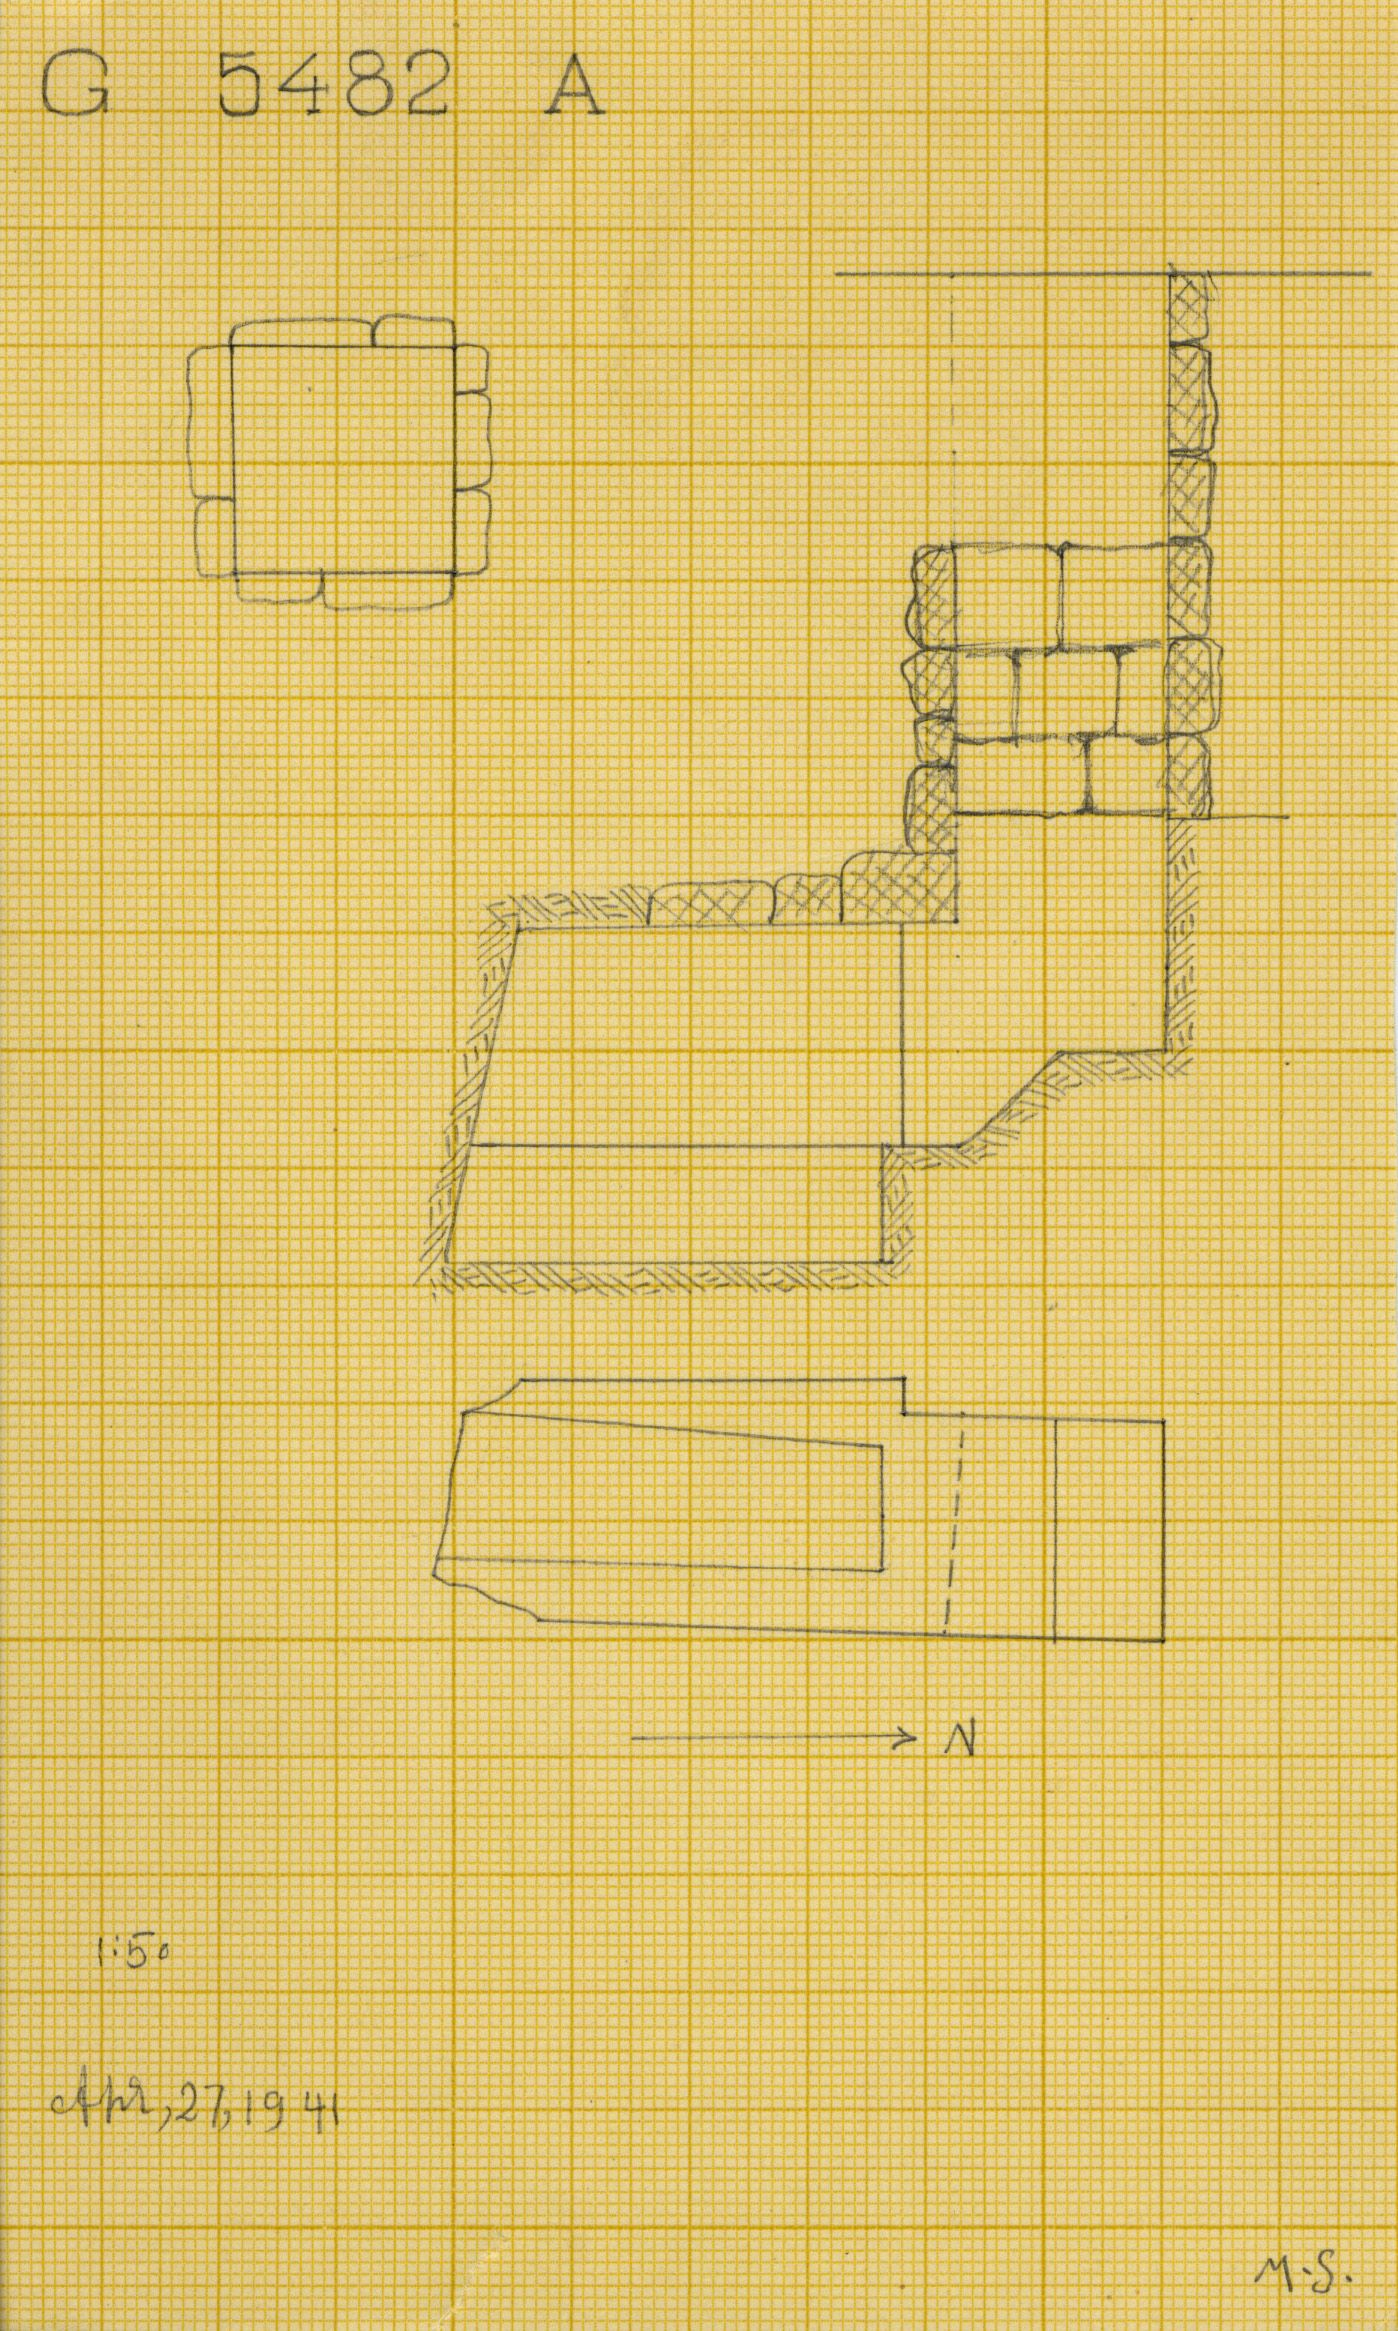 Maps and plans: G 5482, Shaft A